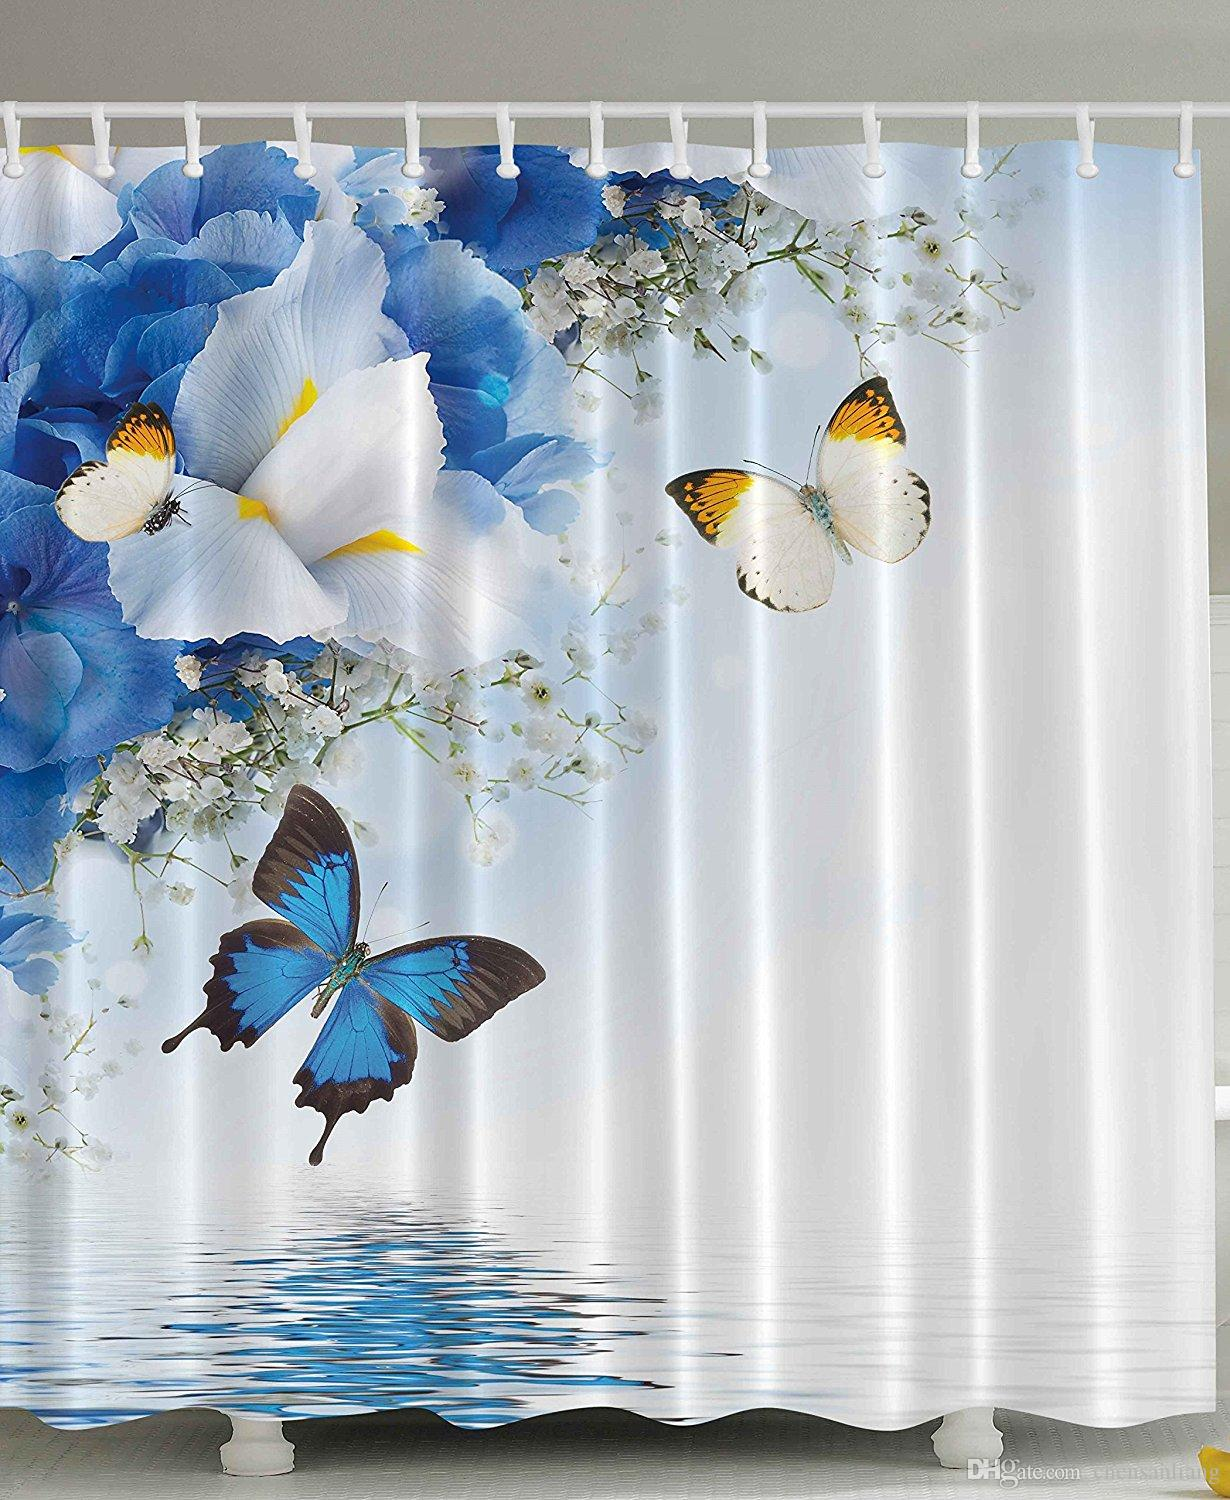 2018 Shower Curtain Blue White Wild Flowers Butterflies Bathroom Polyester Curtains Waterproof Antibacterial With 12 Hooks Bath From